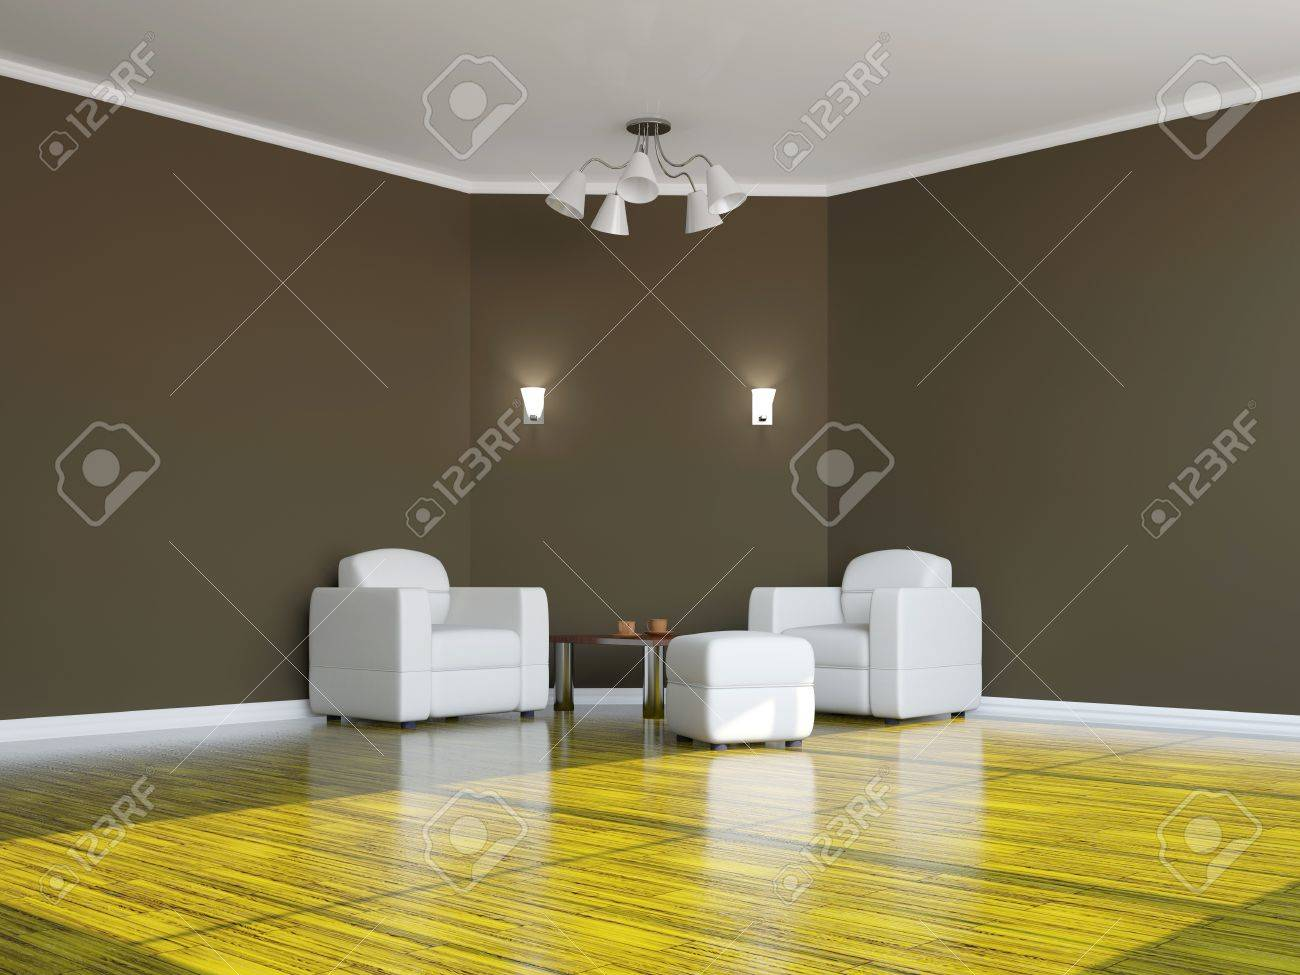 Armchairs and a table near the wall Stock Photo - 15523290